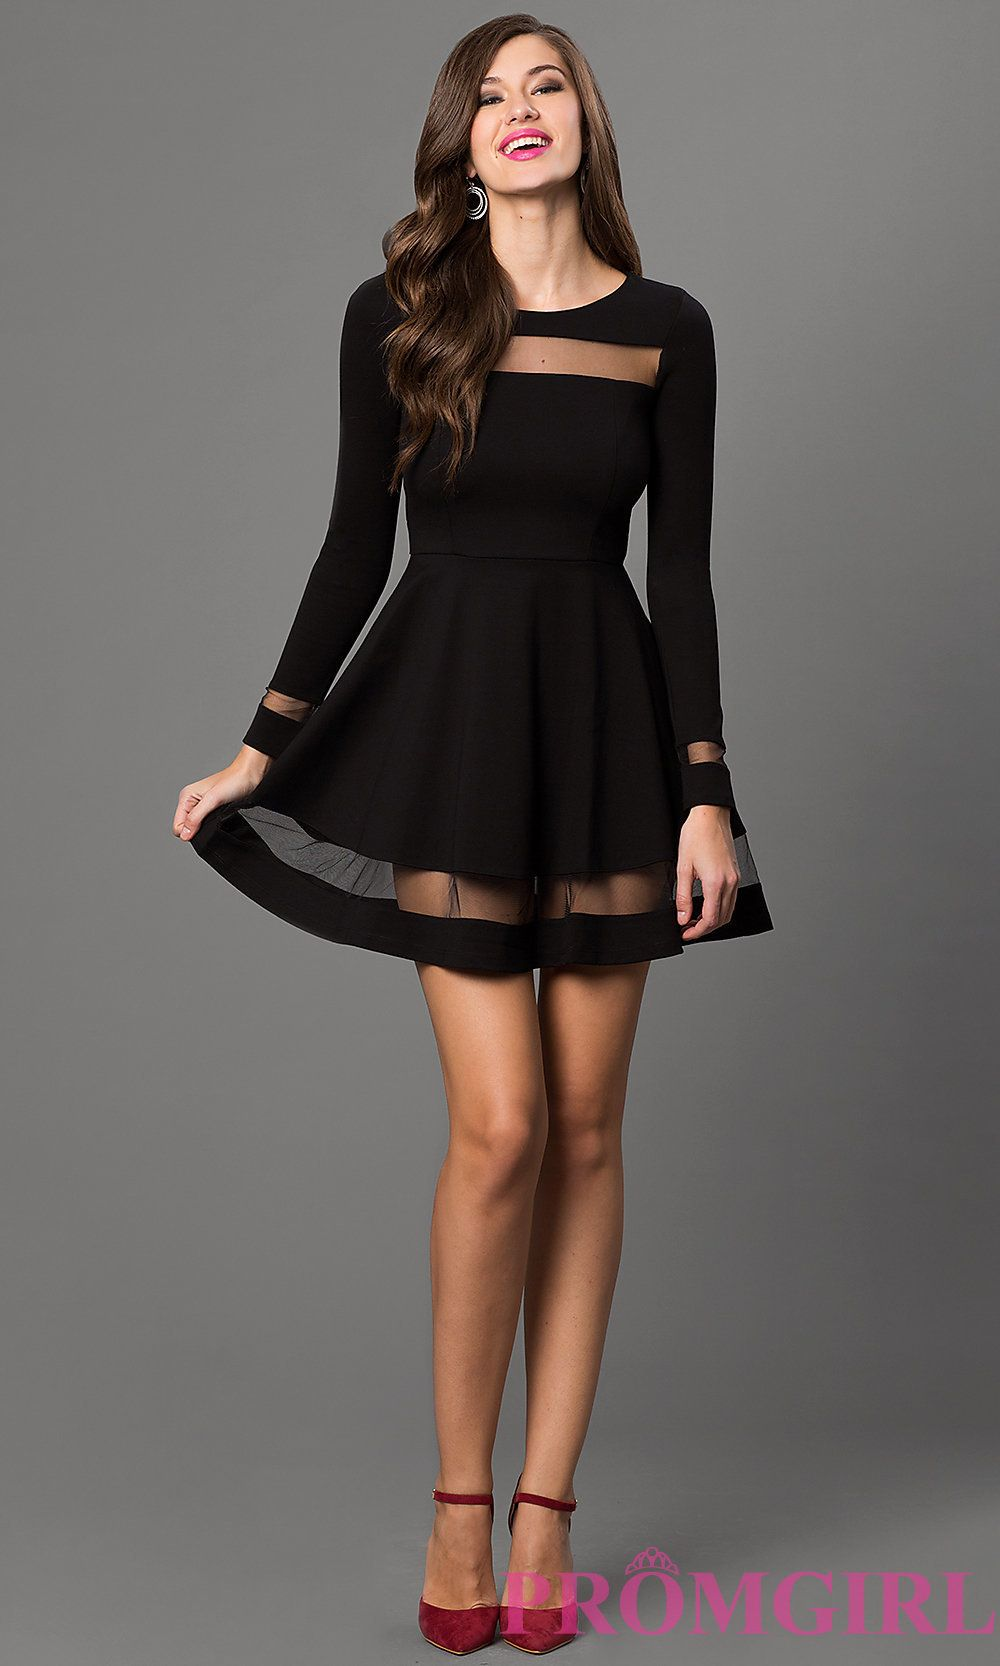 Short Black Dress With Long Sleeves